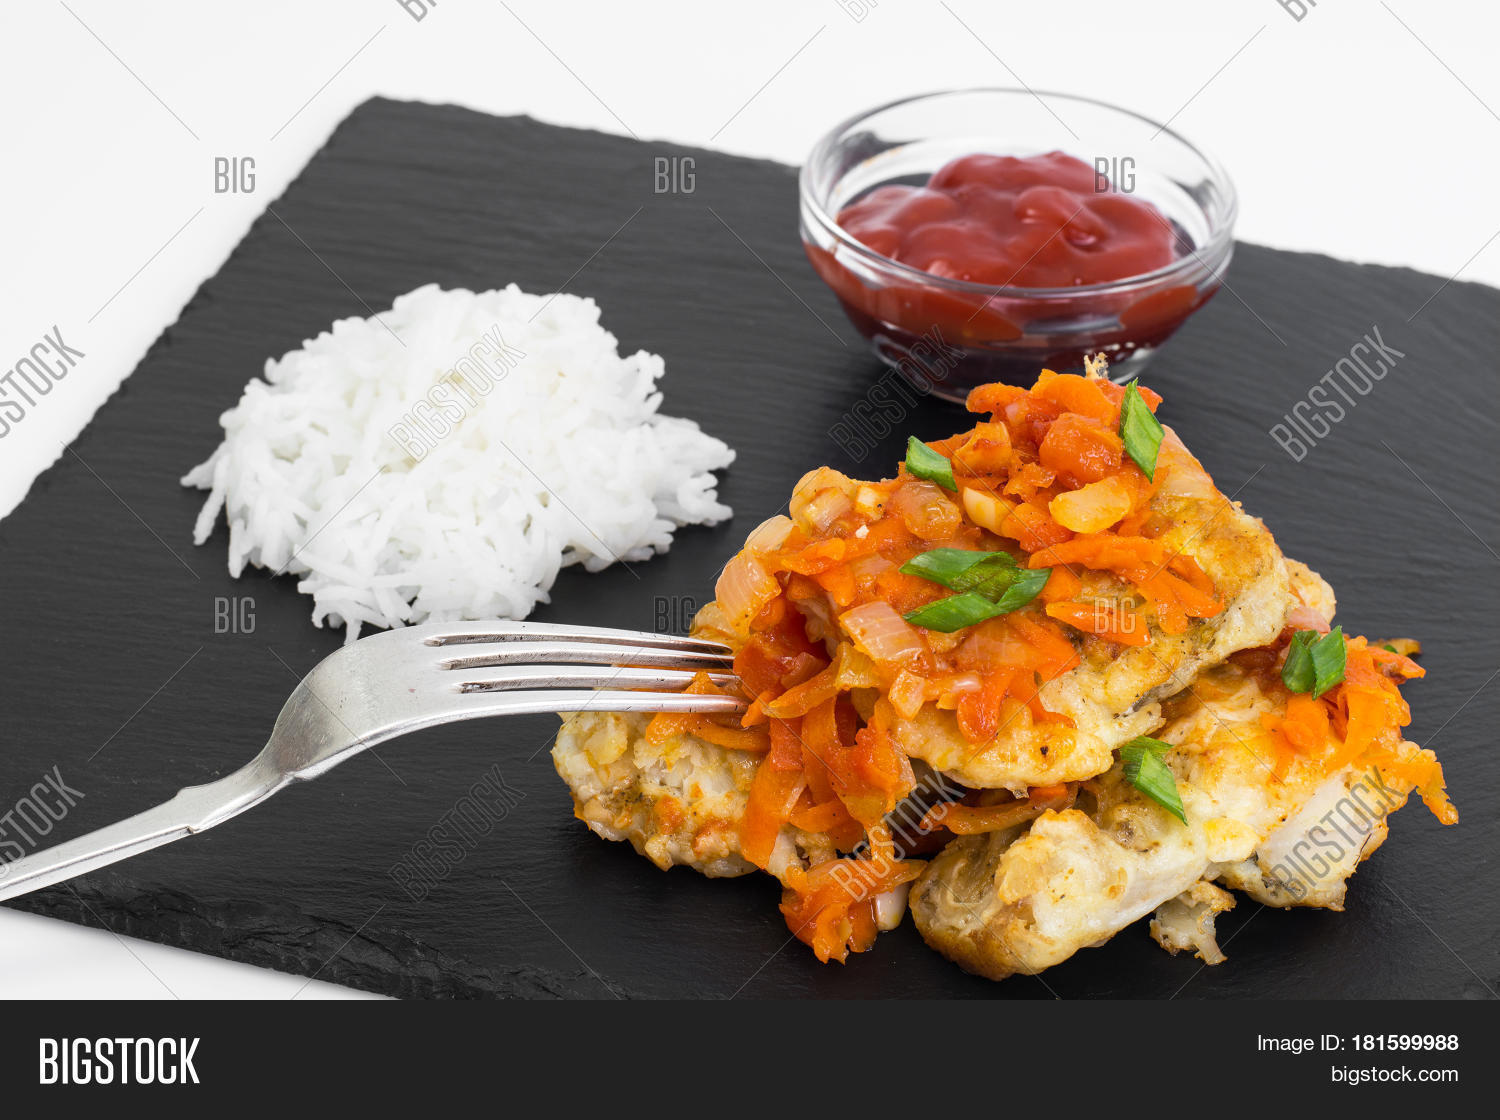 White fish vegetables side dish image photo bigstock for Rice side dishes for fish